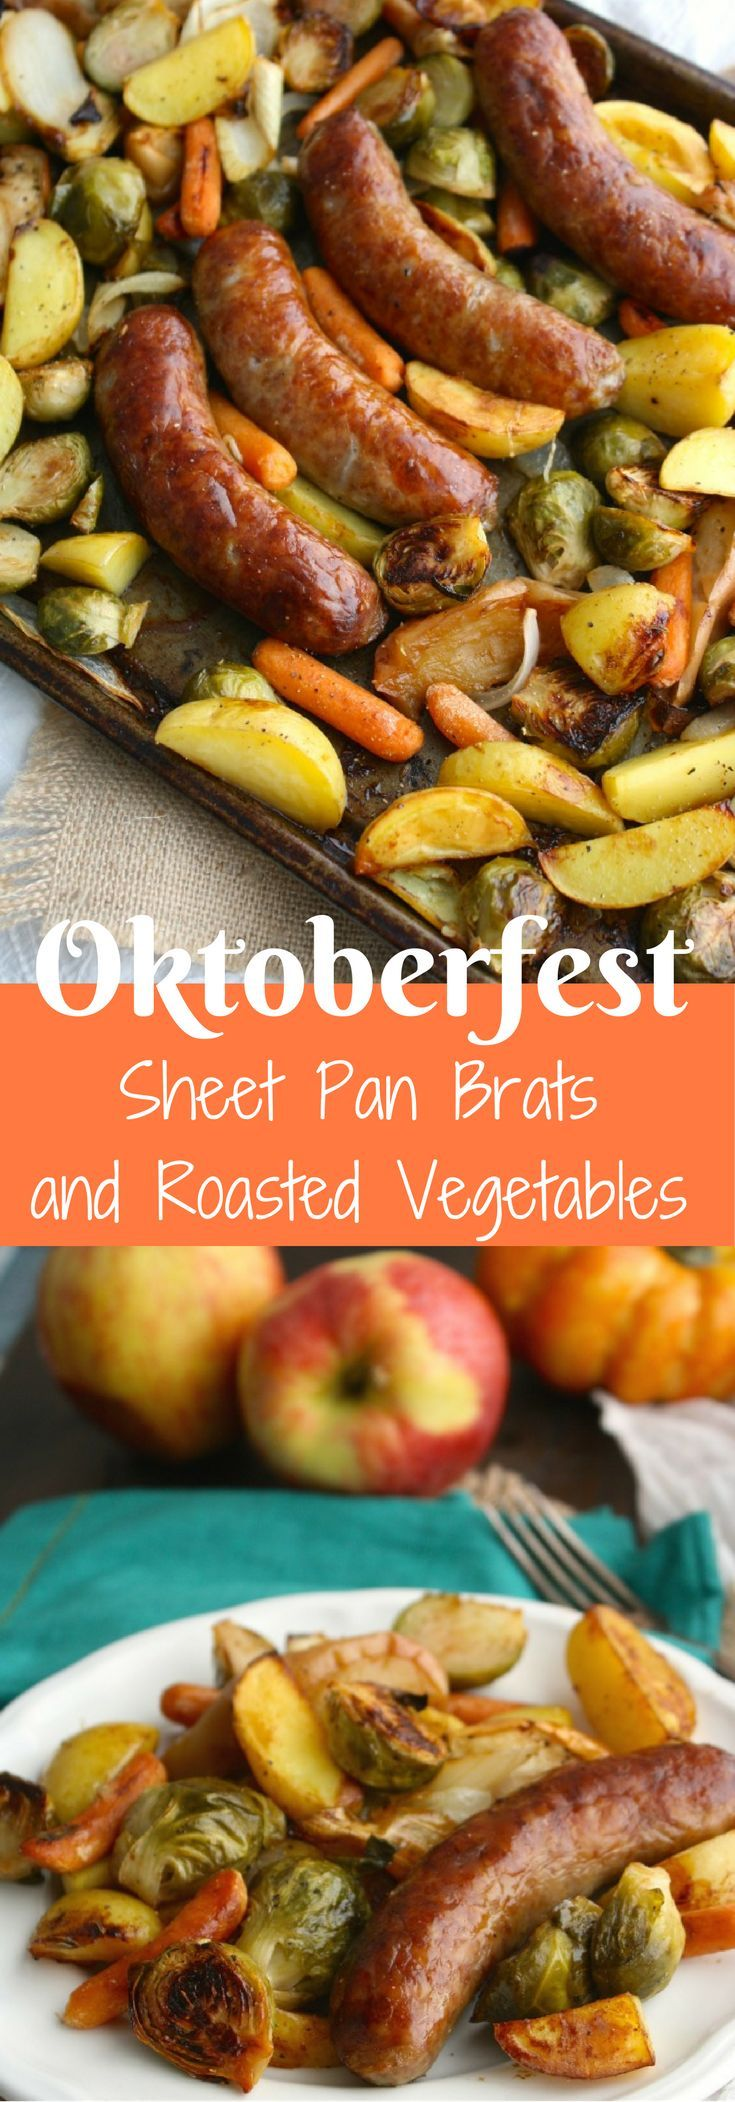 Get ready for your favorite fall foods: Oktoberfest Sheet Pan Brats with Vegetables is tasty, filling, and so easy to make!